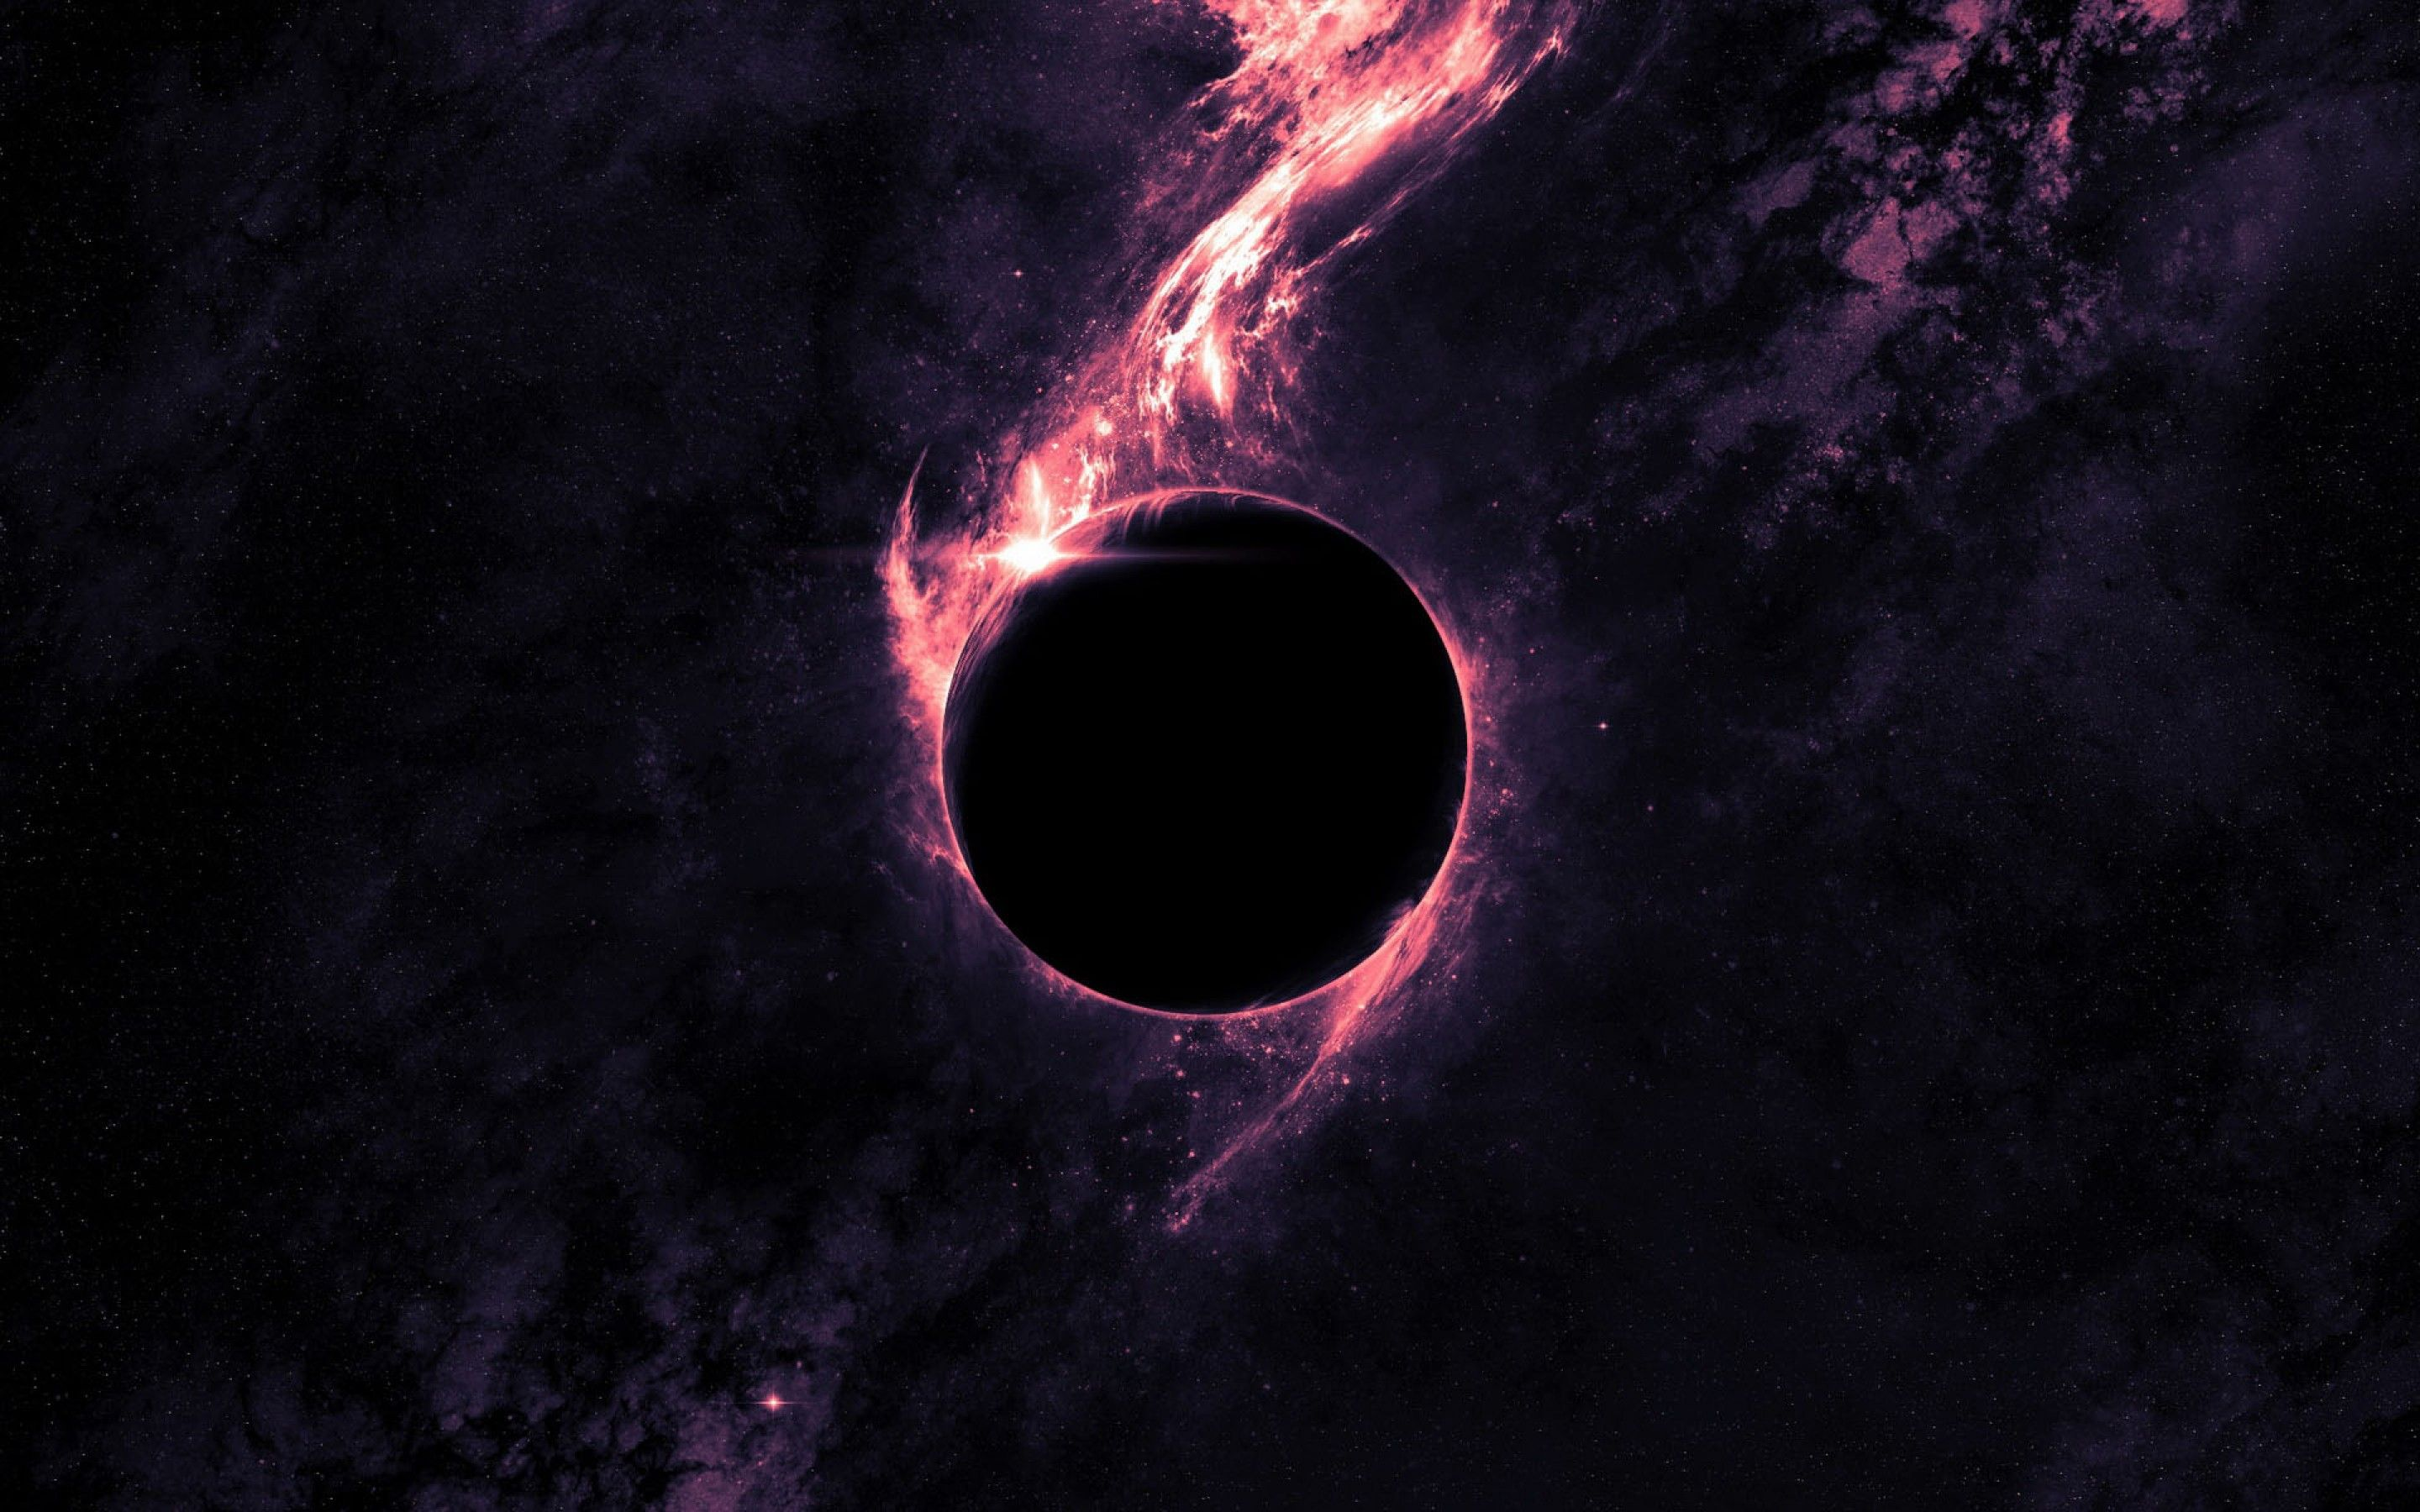 Black Hole | In the outer flow, Space | Free HD wallpapers | THE UNIVERSE | Pinterest | Planets ...